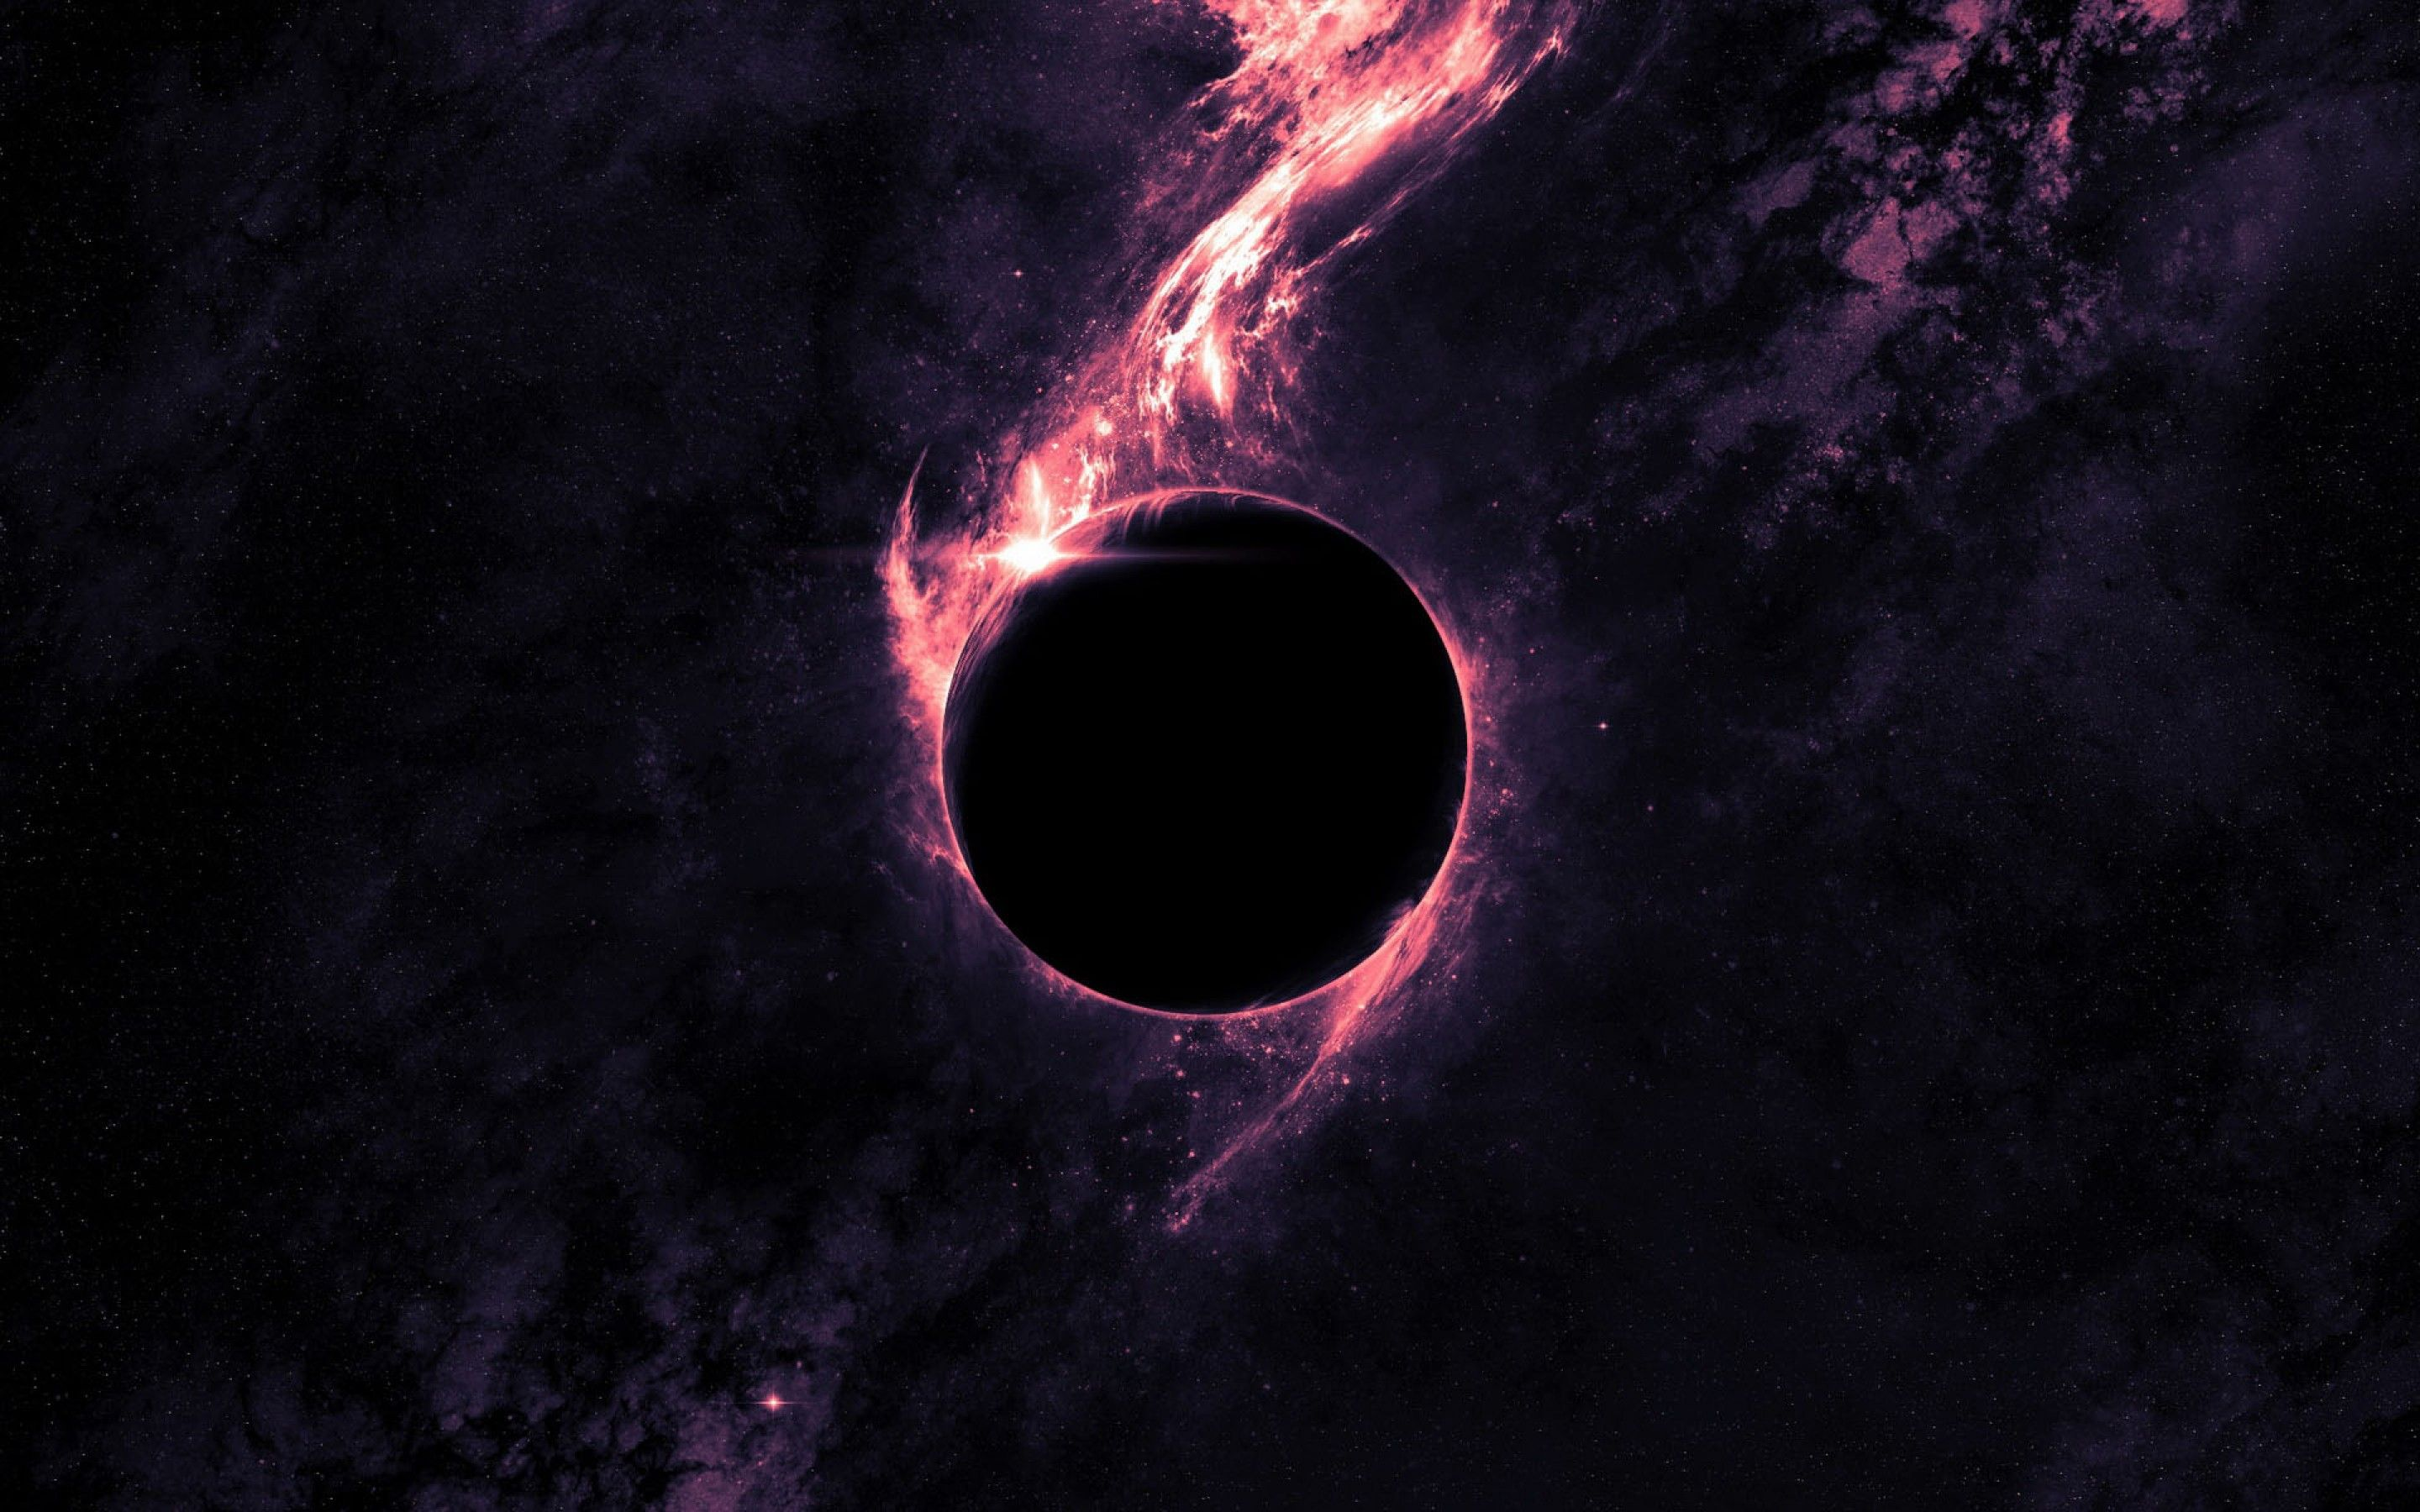 Black Hole | In the outer flow, Space | Free HD wallpapers | THE UNIVERSE | Pinterest | Planets ...